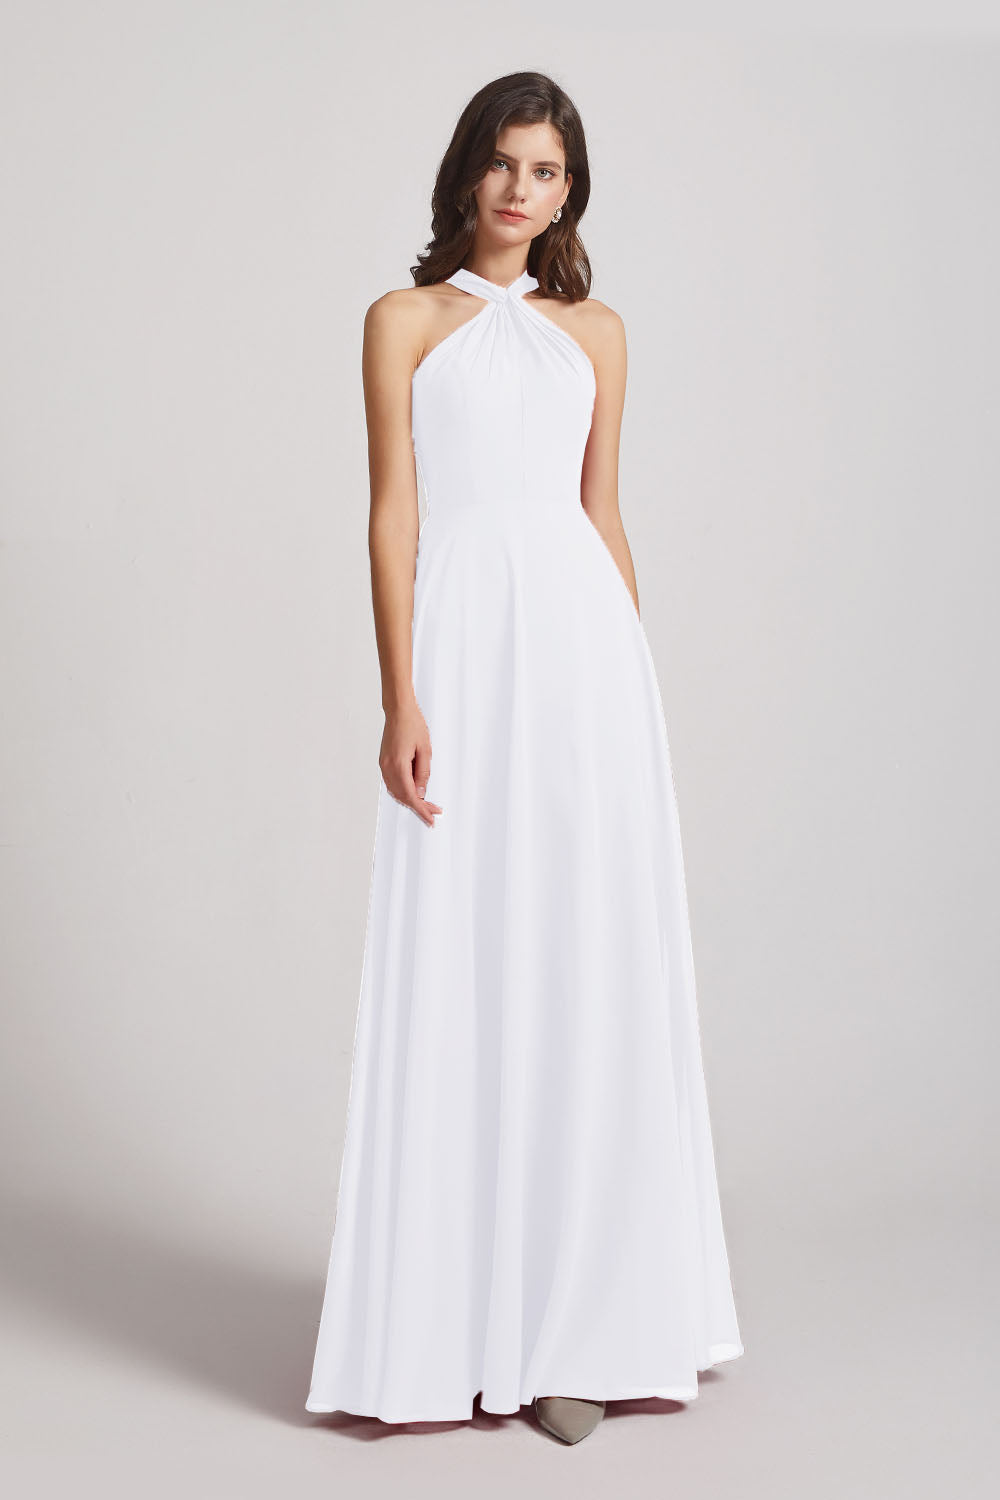 Alfa Bridal White Floor Length Chiffon Bridesmaid Dresses with Criss Cross Neckline (AF0113)